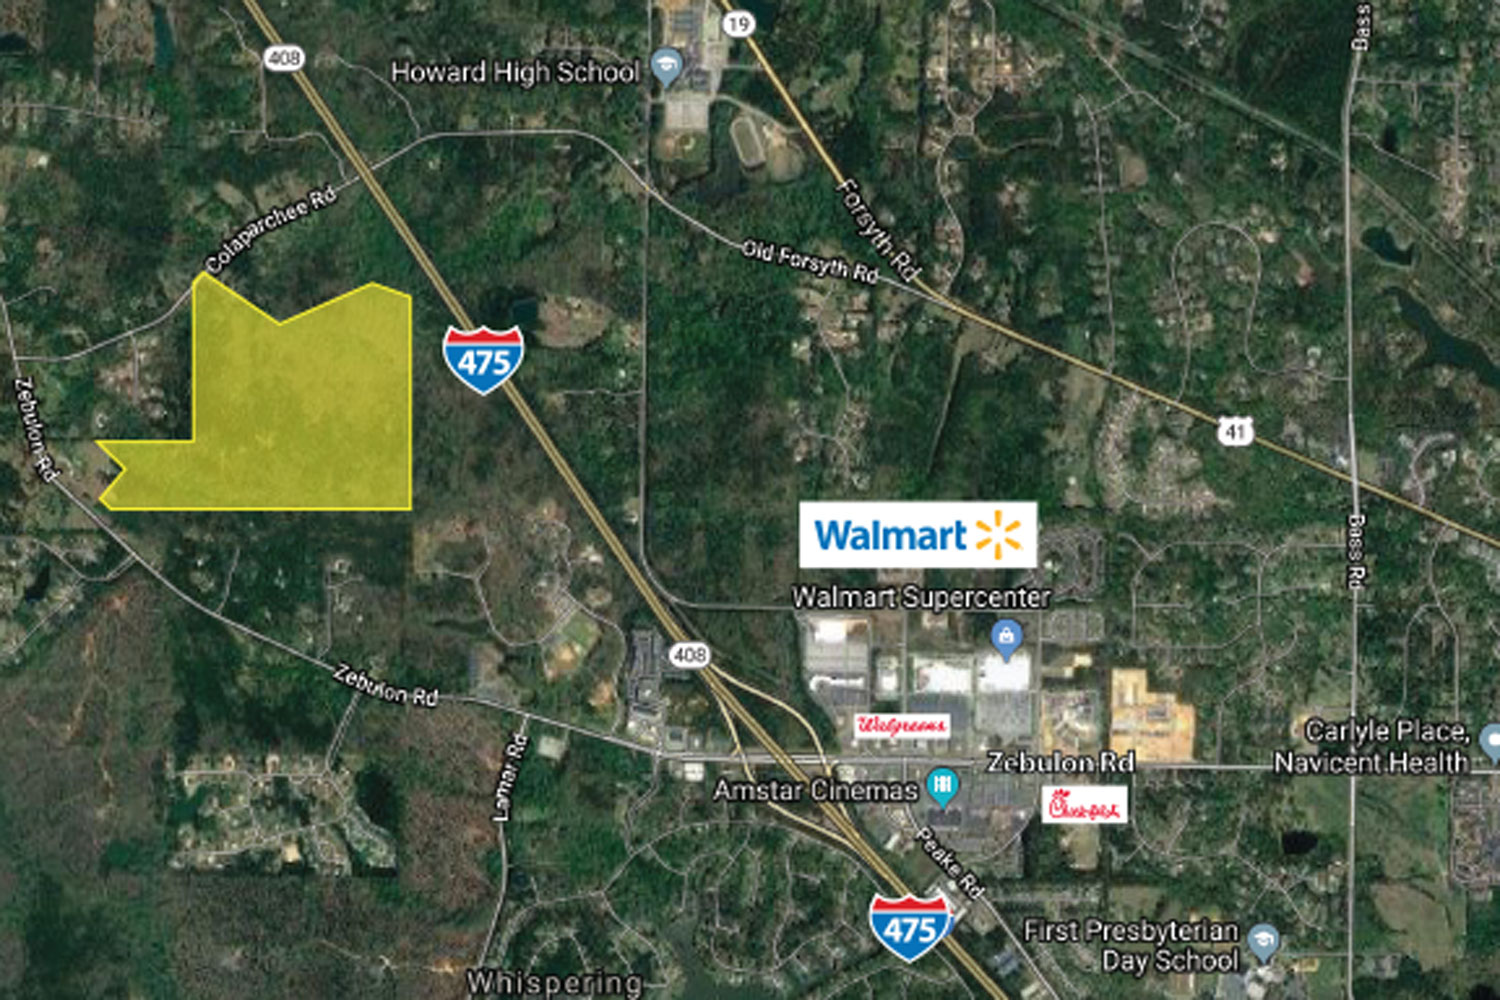 Land For Sale Zebulon Rd And Colaparchee Rd Macon Ga Thornton Realty Development In order to commemorate its centennial, amc is offering movies in 2020 at 1920 prices on opening day. thornton realty development